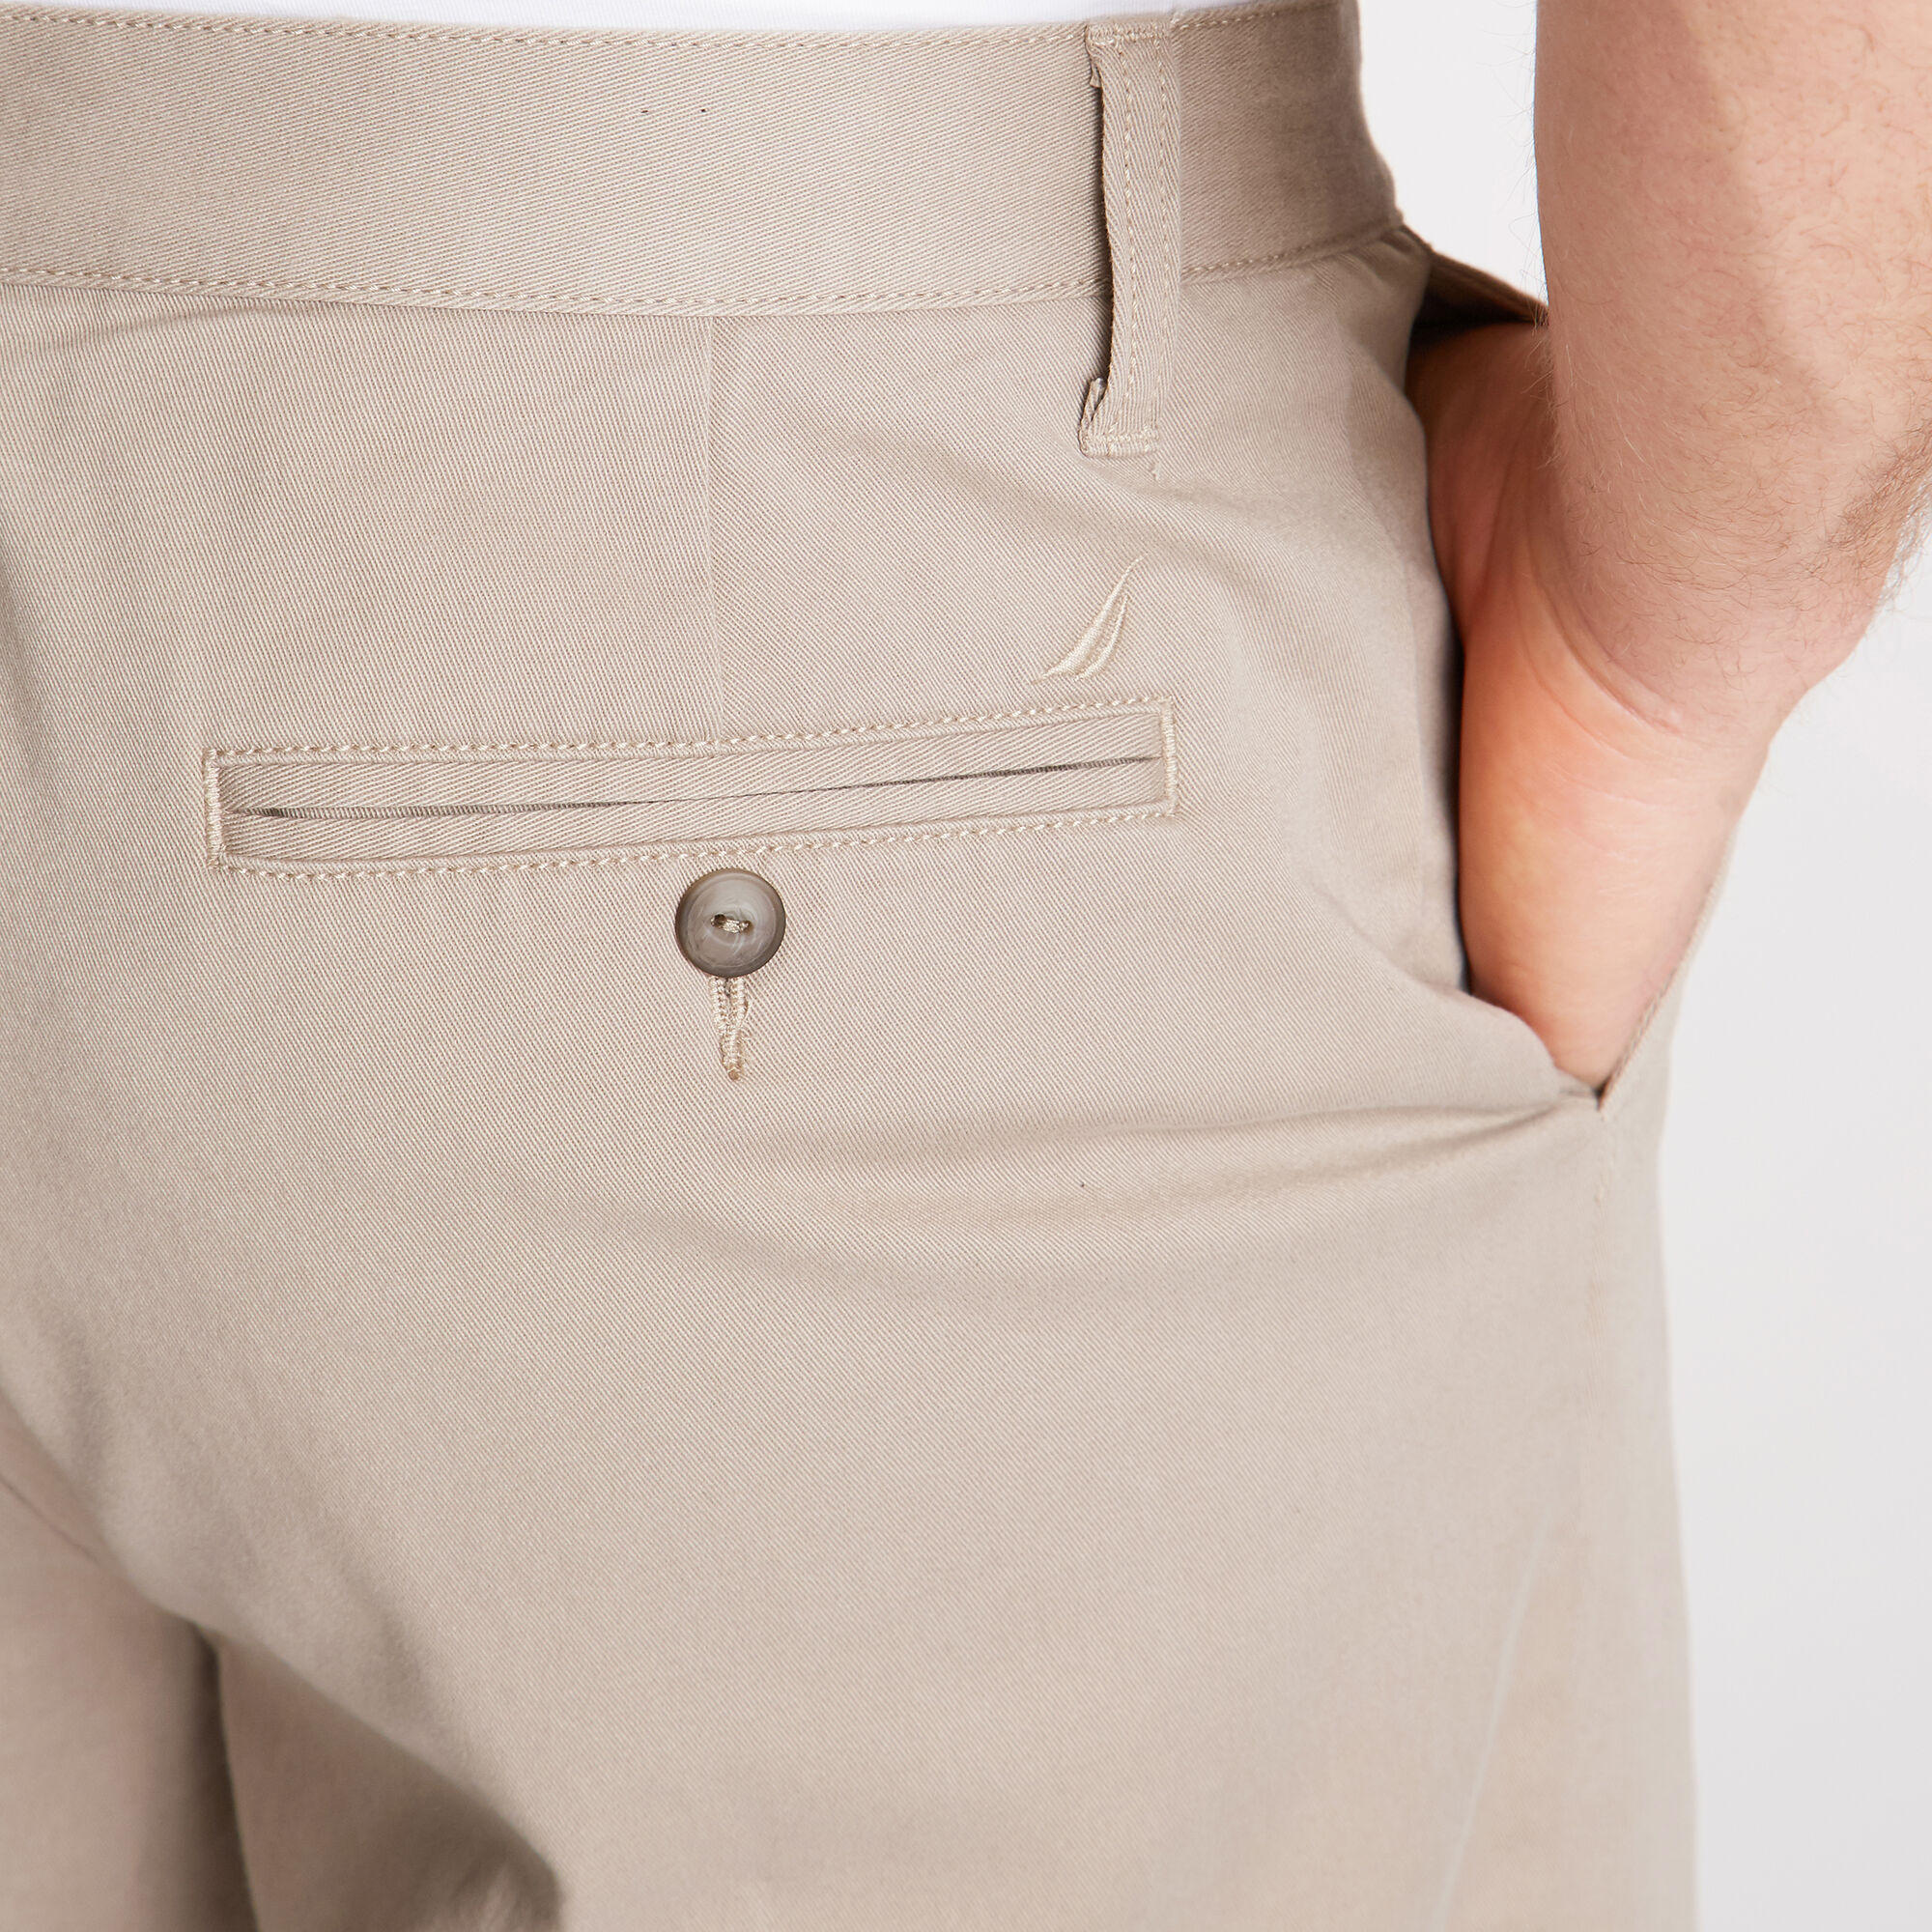 Nautica-Mens-10-034-Classic-Fit-Deck-Shorts-With-Stretch thumbnail 34